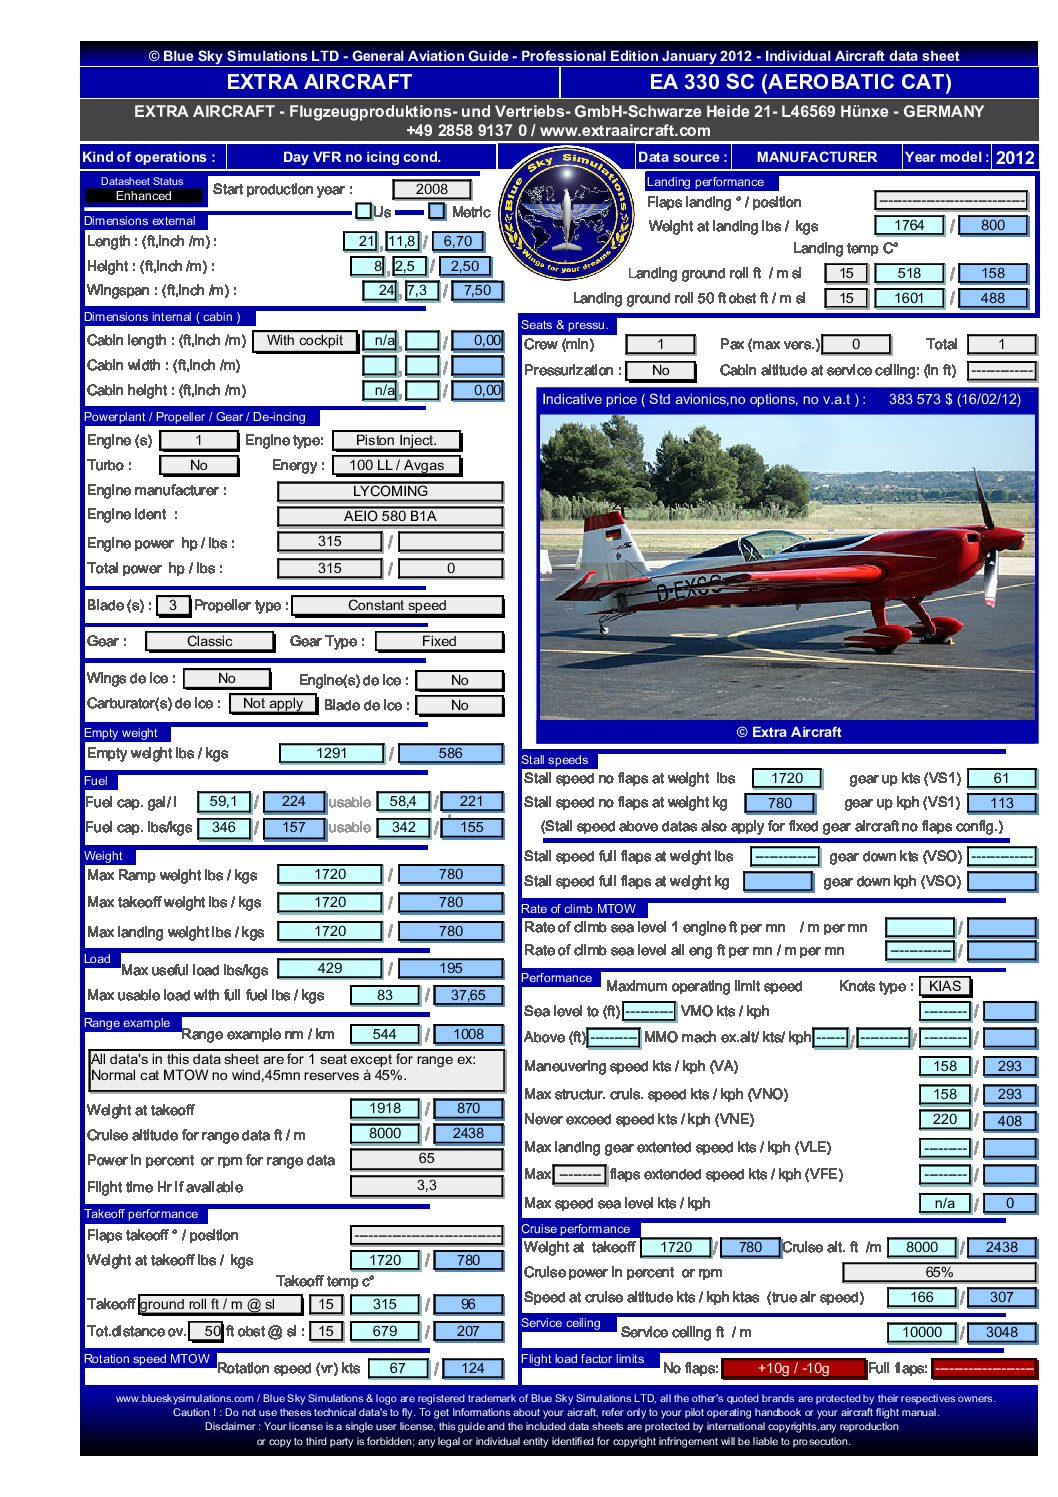 Aviation catalog Extra Aircraft 330 SC